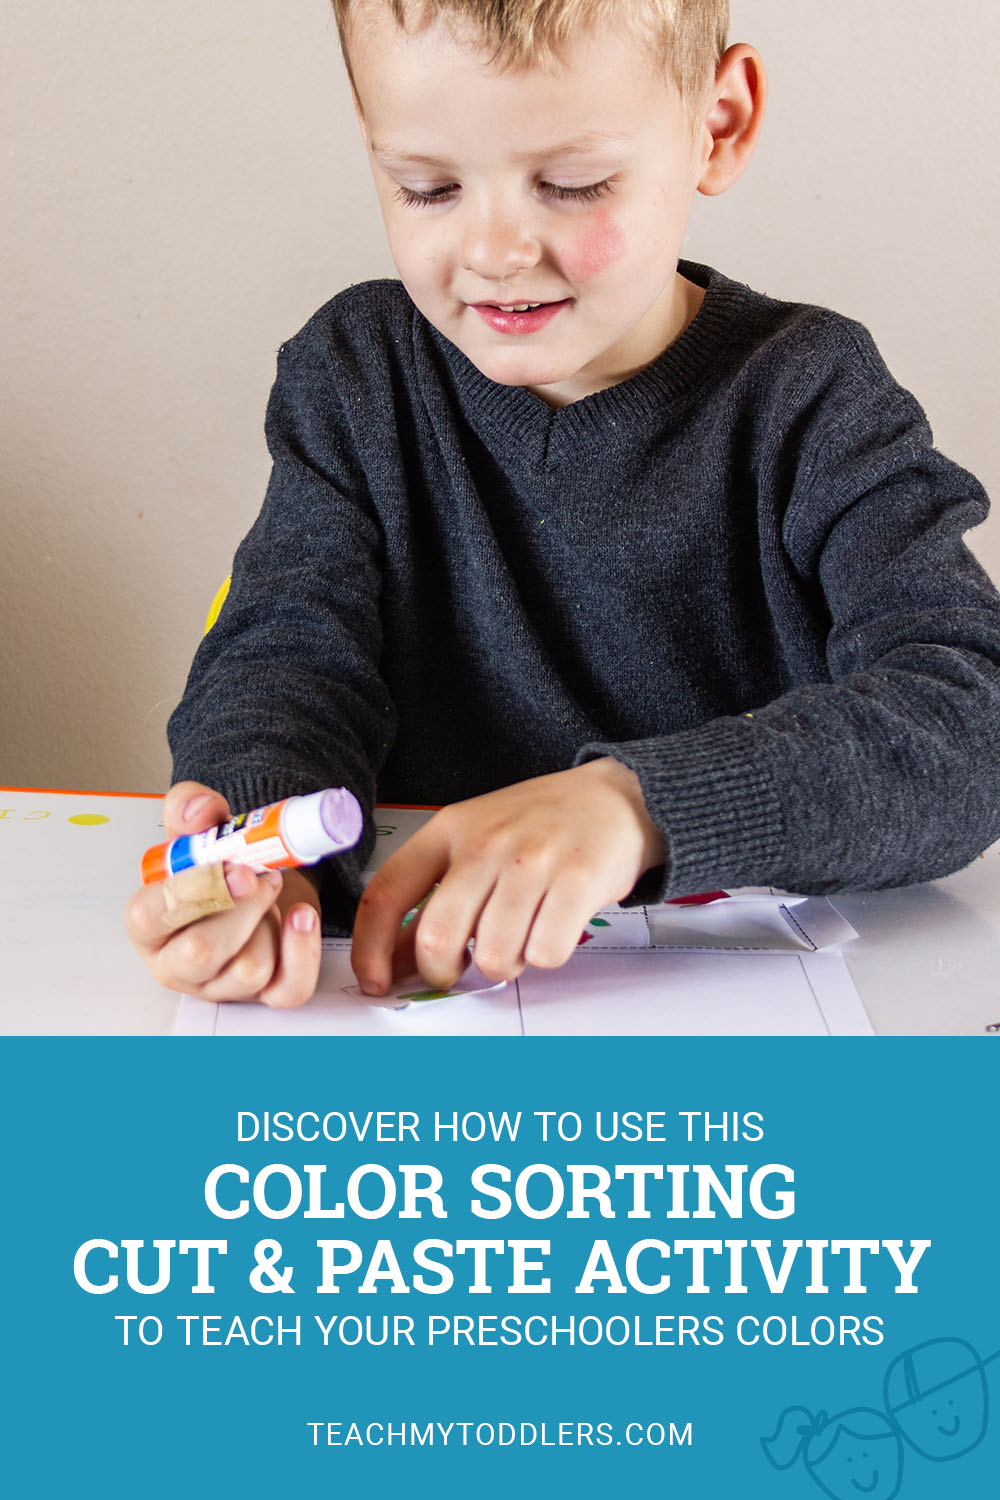 Discover how to use this color sorting cut and paste activity to teach your preschoolers colors